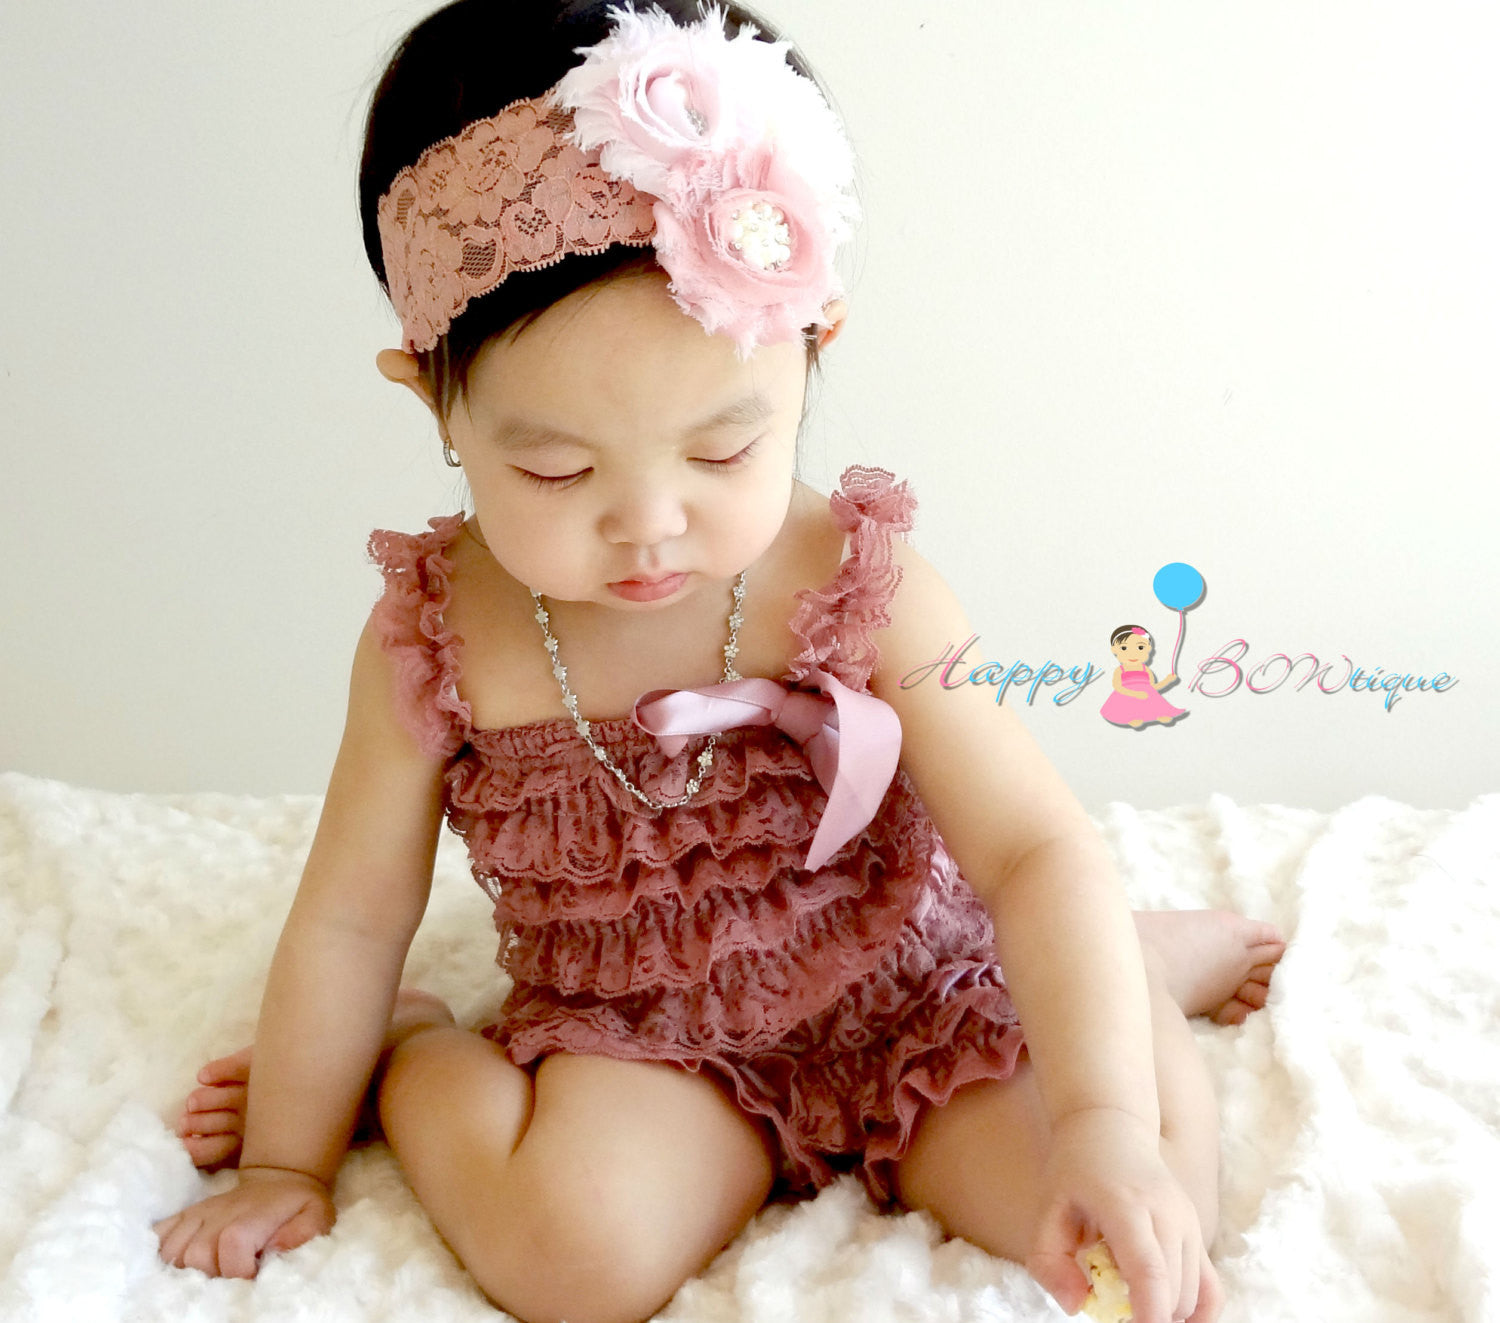 Dusty Rose Petti Lace Romper Set - Happy BOWtique - children's clothing, Baby Girl clothing